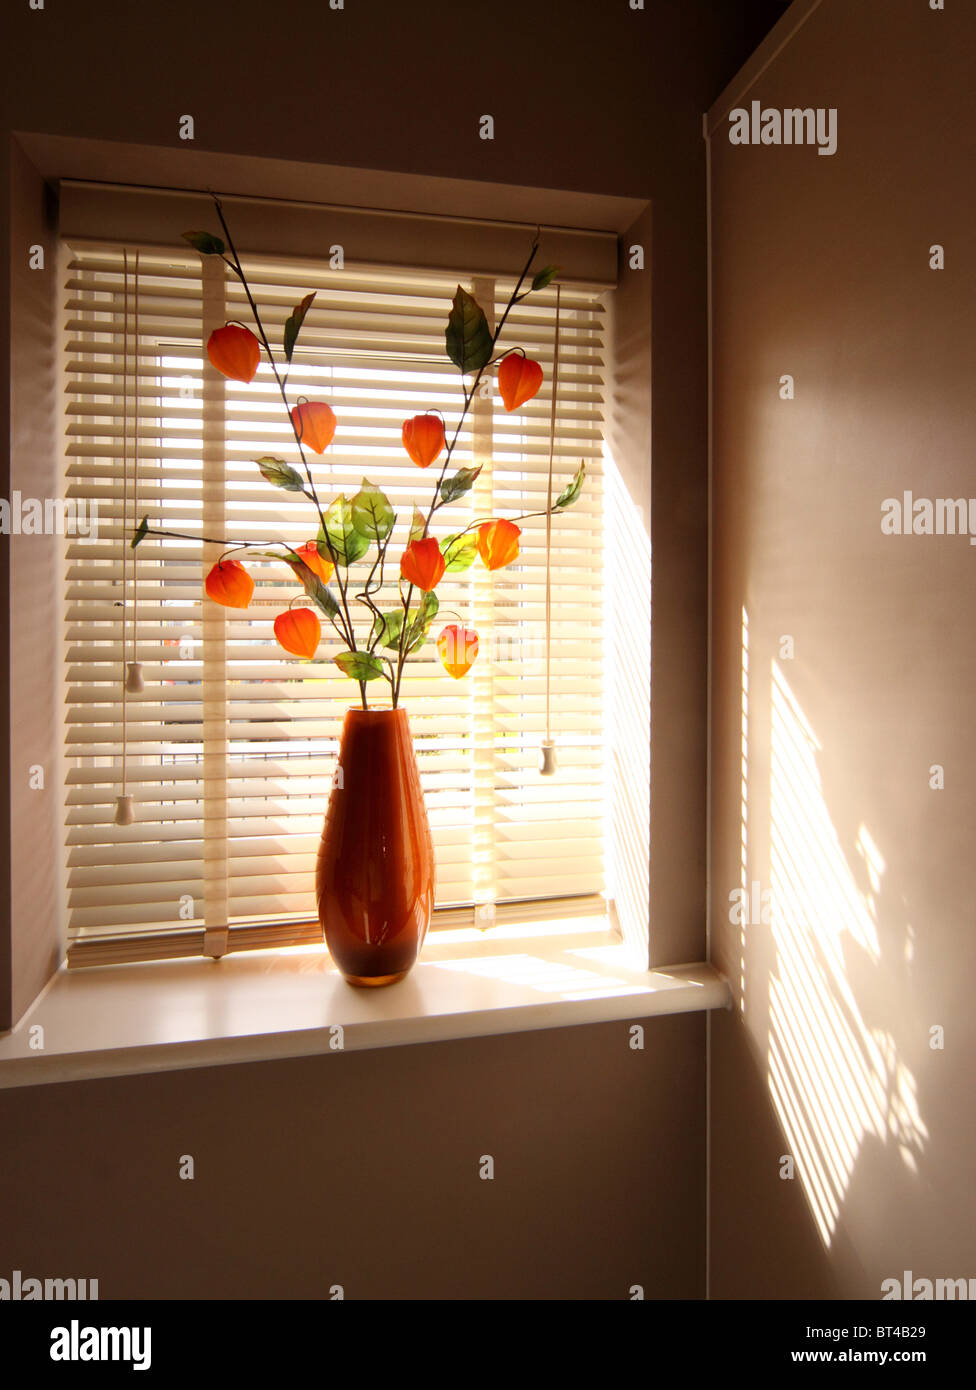 Modern orange vase and orange flowers in a window behind a venetian blind Stock Photo